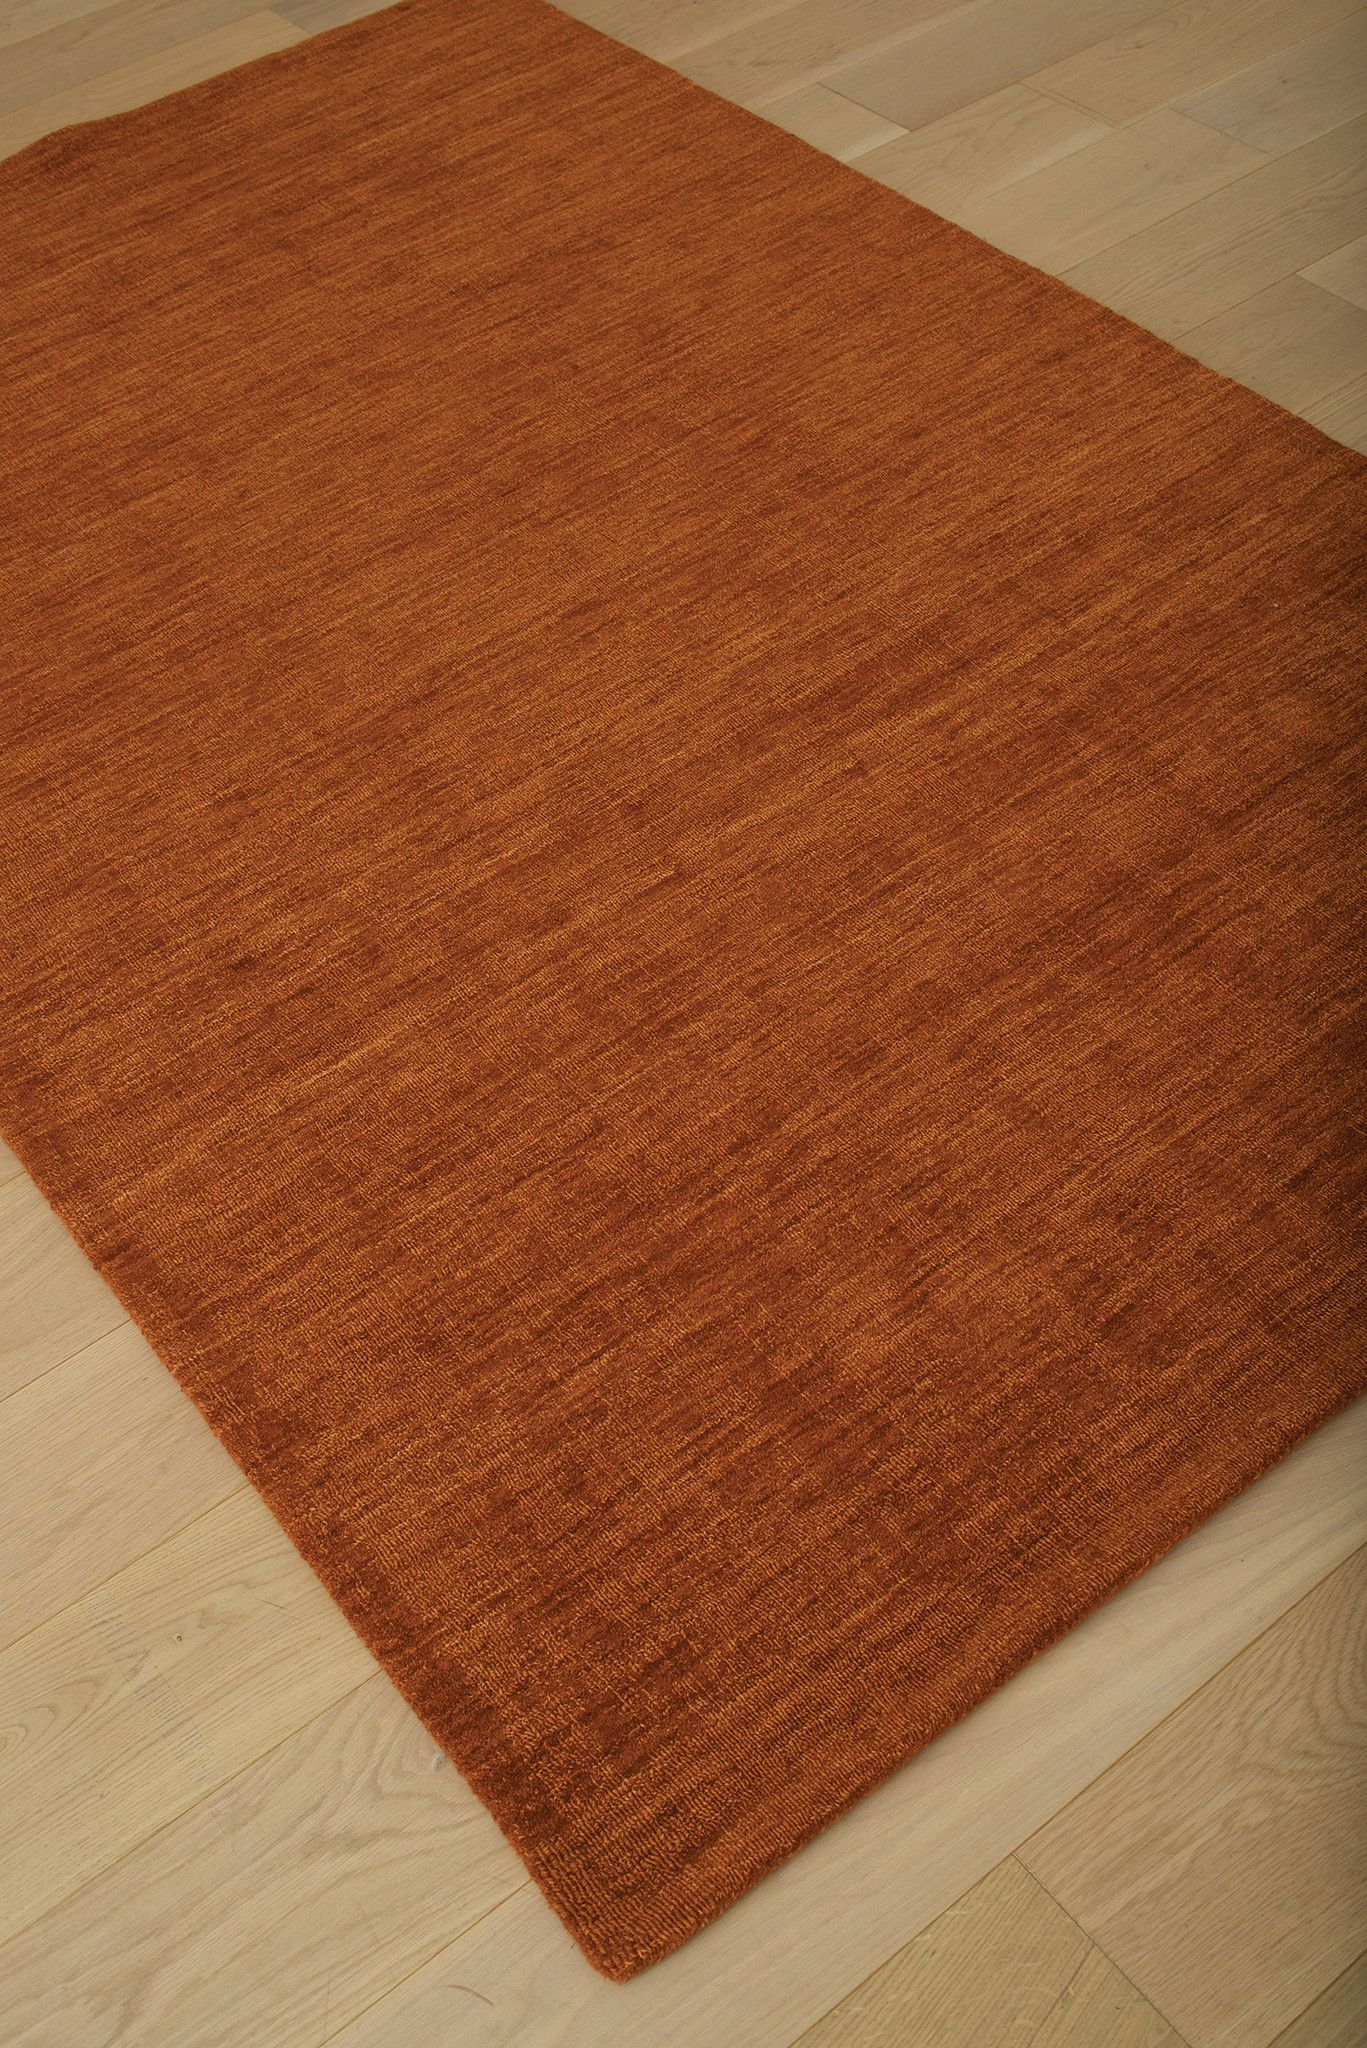 2018 Burnt Orange Area Rug With Images Rugs Orange Rugs Area